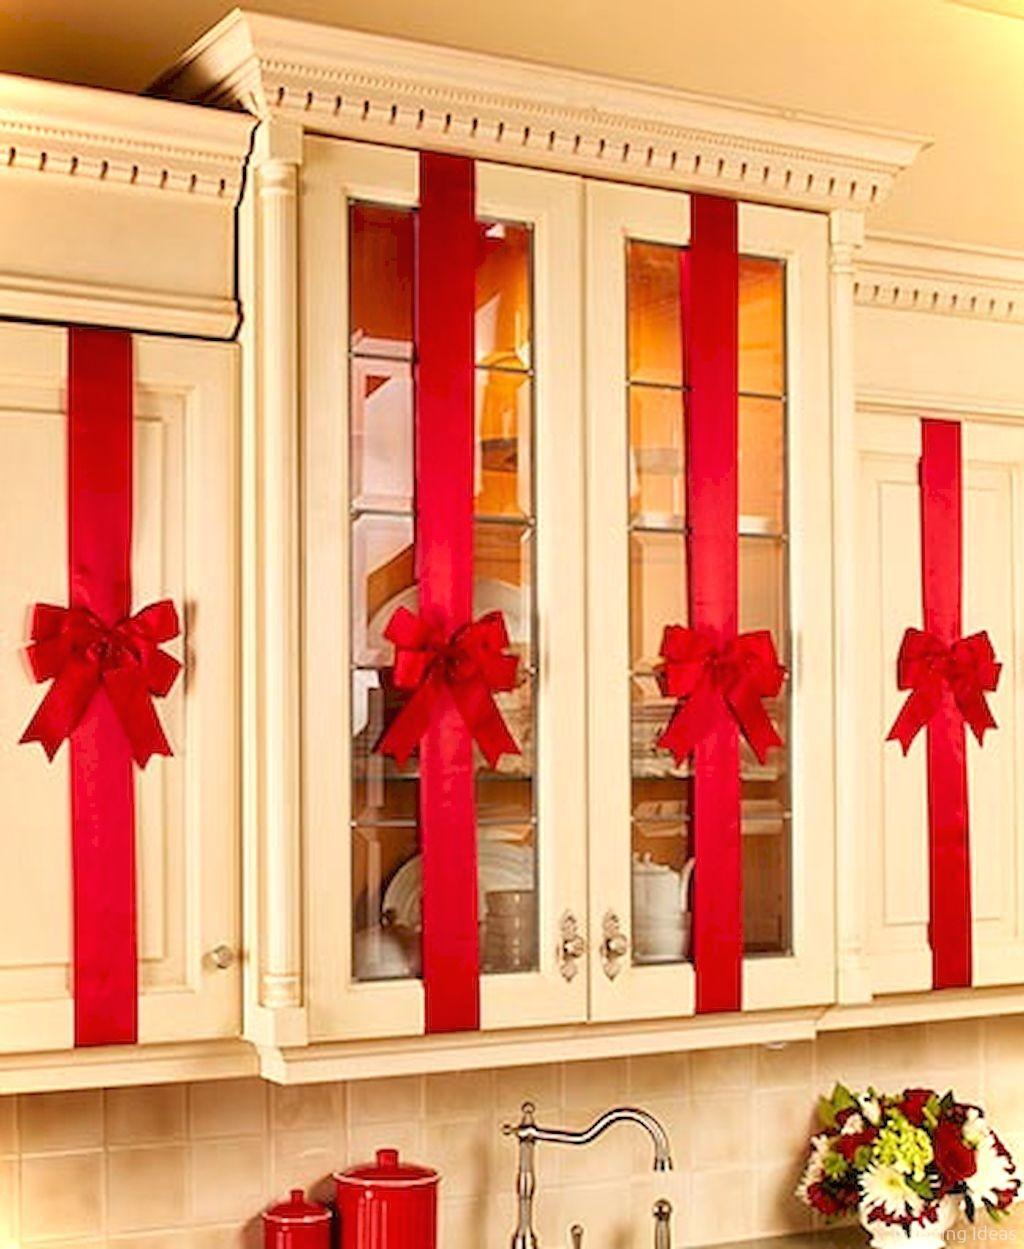 Simple Christmas Decorations Ideas Home